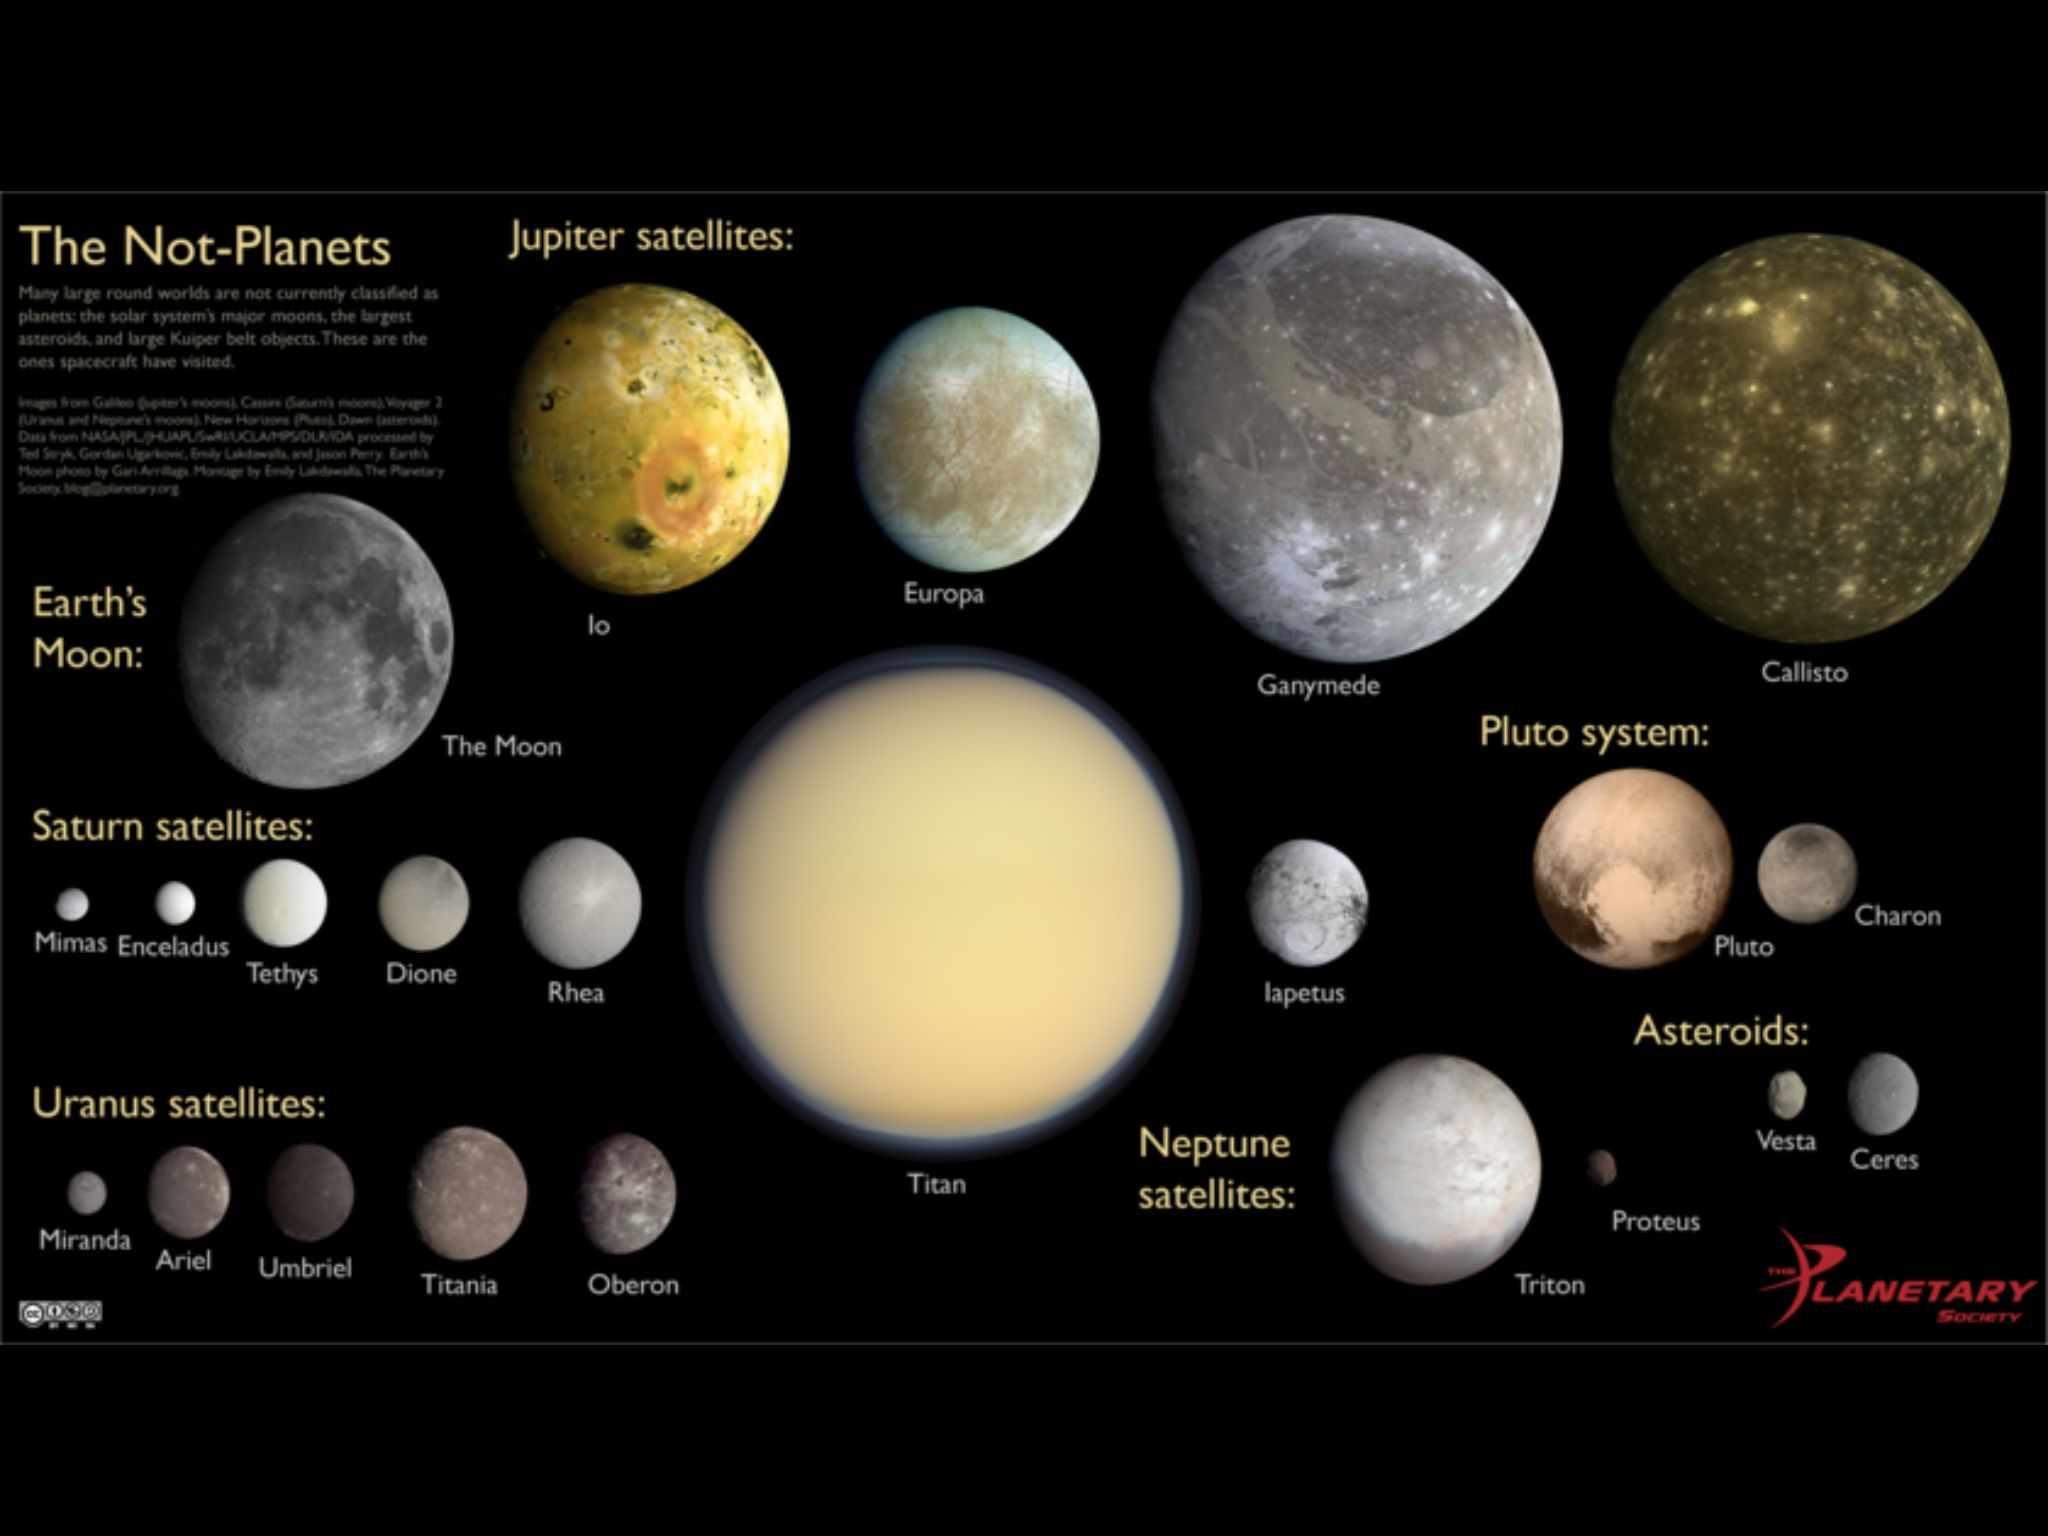 The not-planets